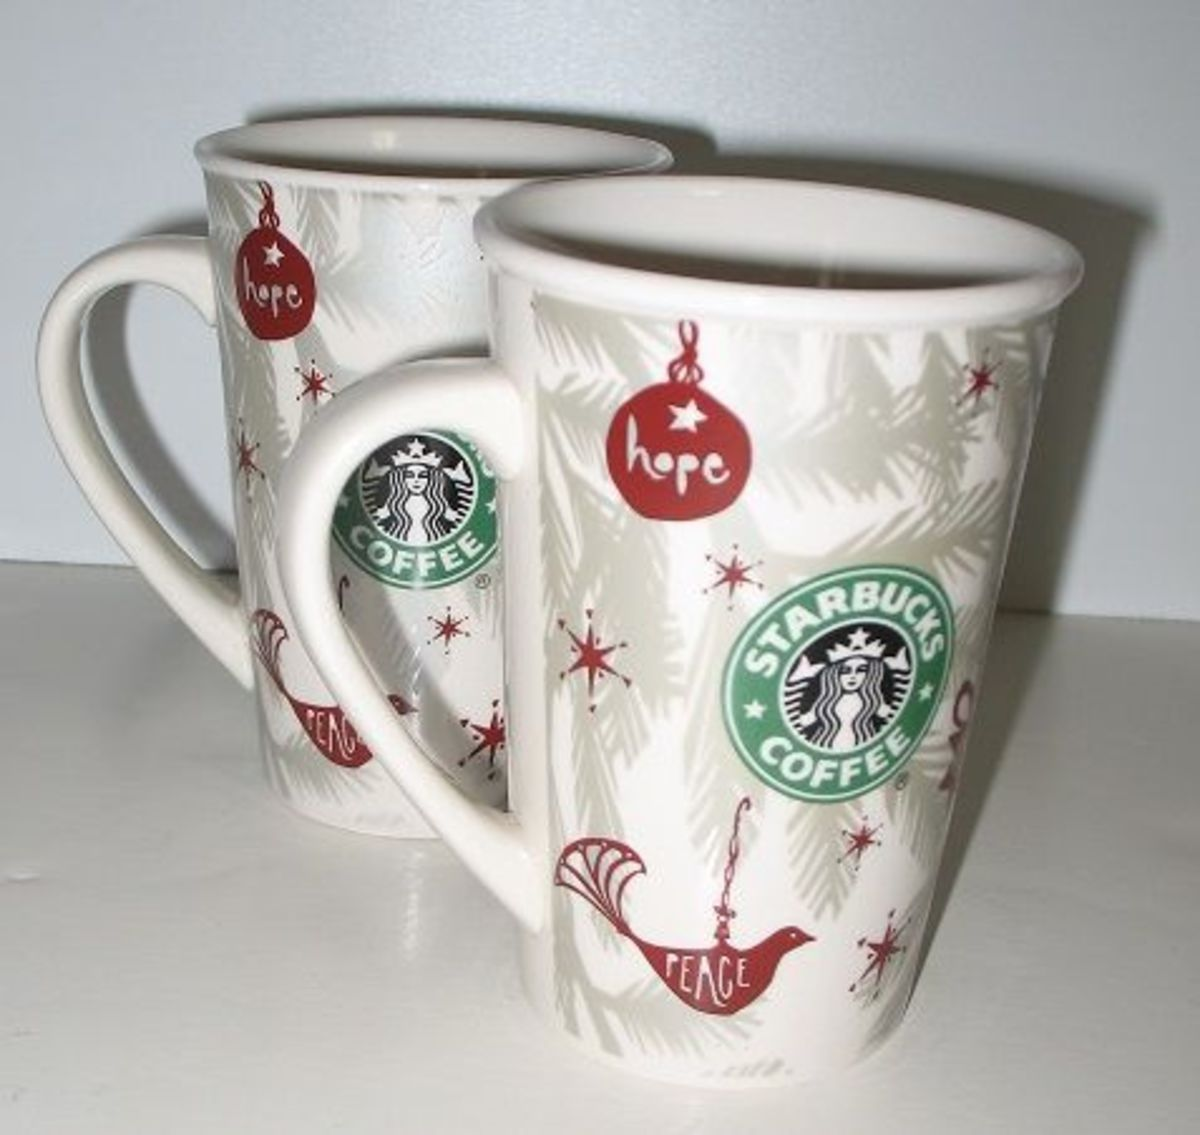 Starbucks 2010 Christmas Mug